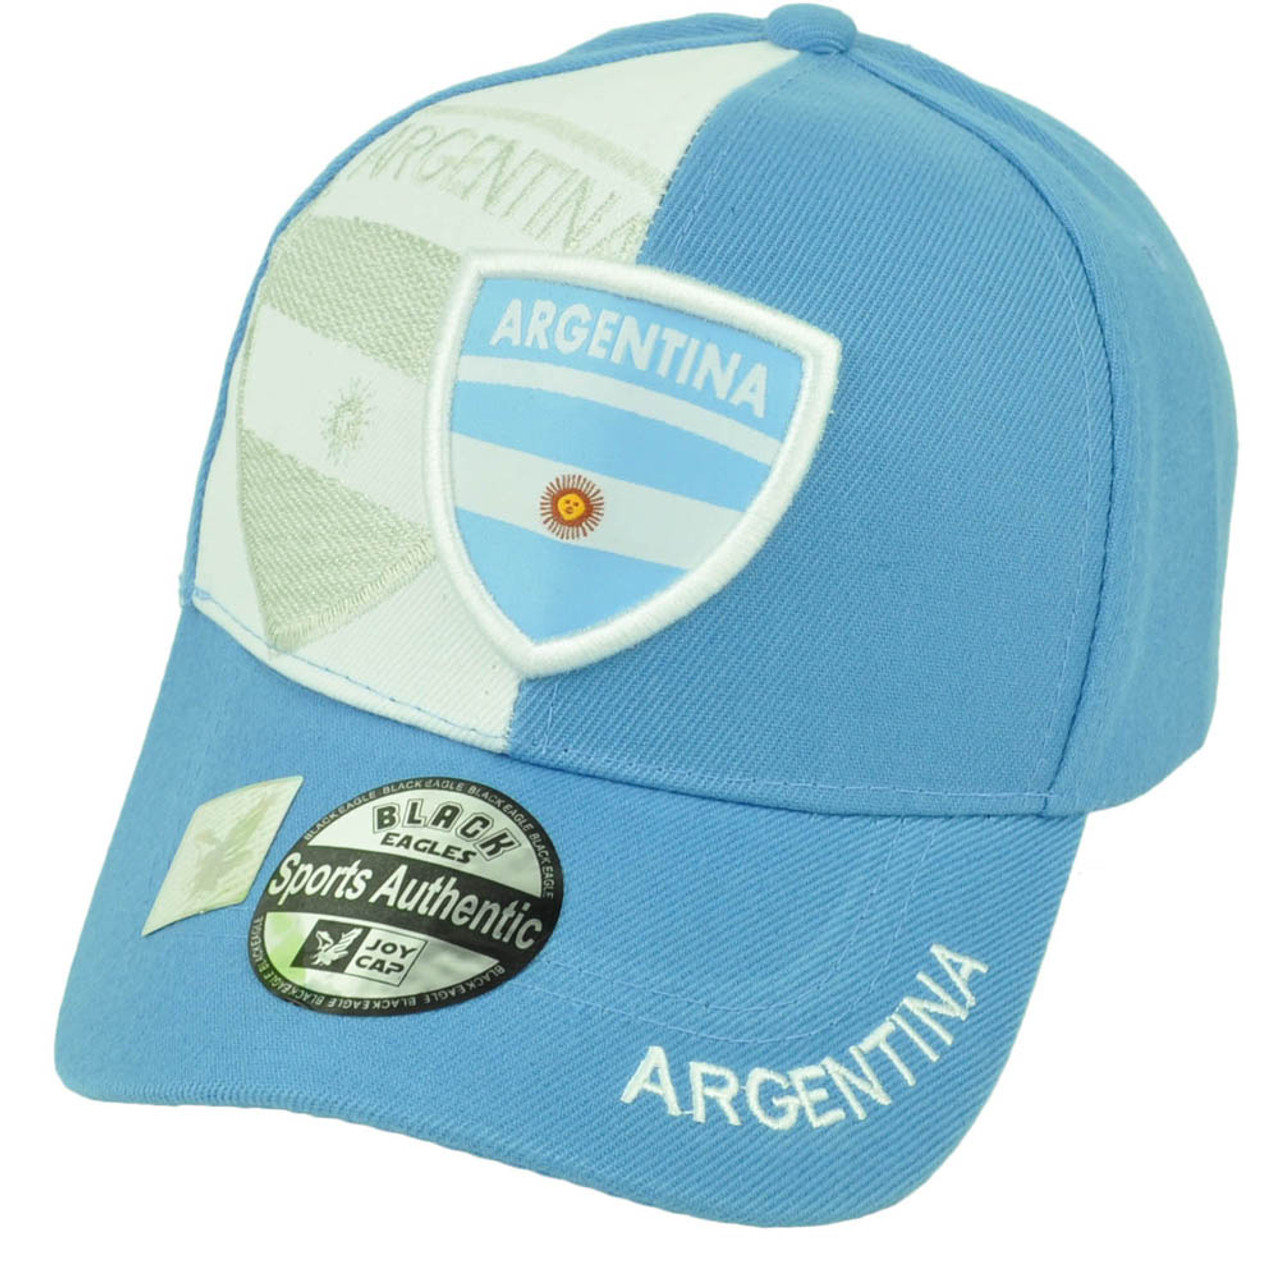 4b78314c53b Argentina Flag Baby Blue White Hat Cap Country Adjustable Argentine Curved  Bill - Cap Store Online.com